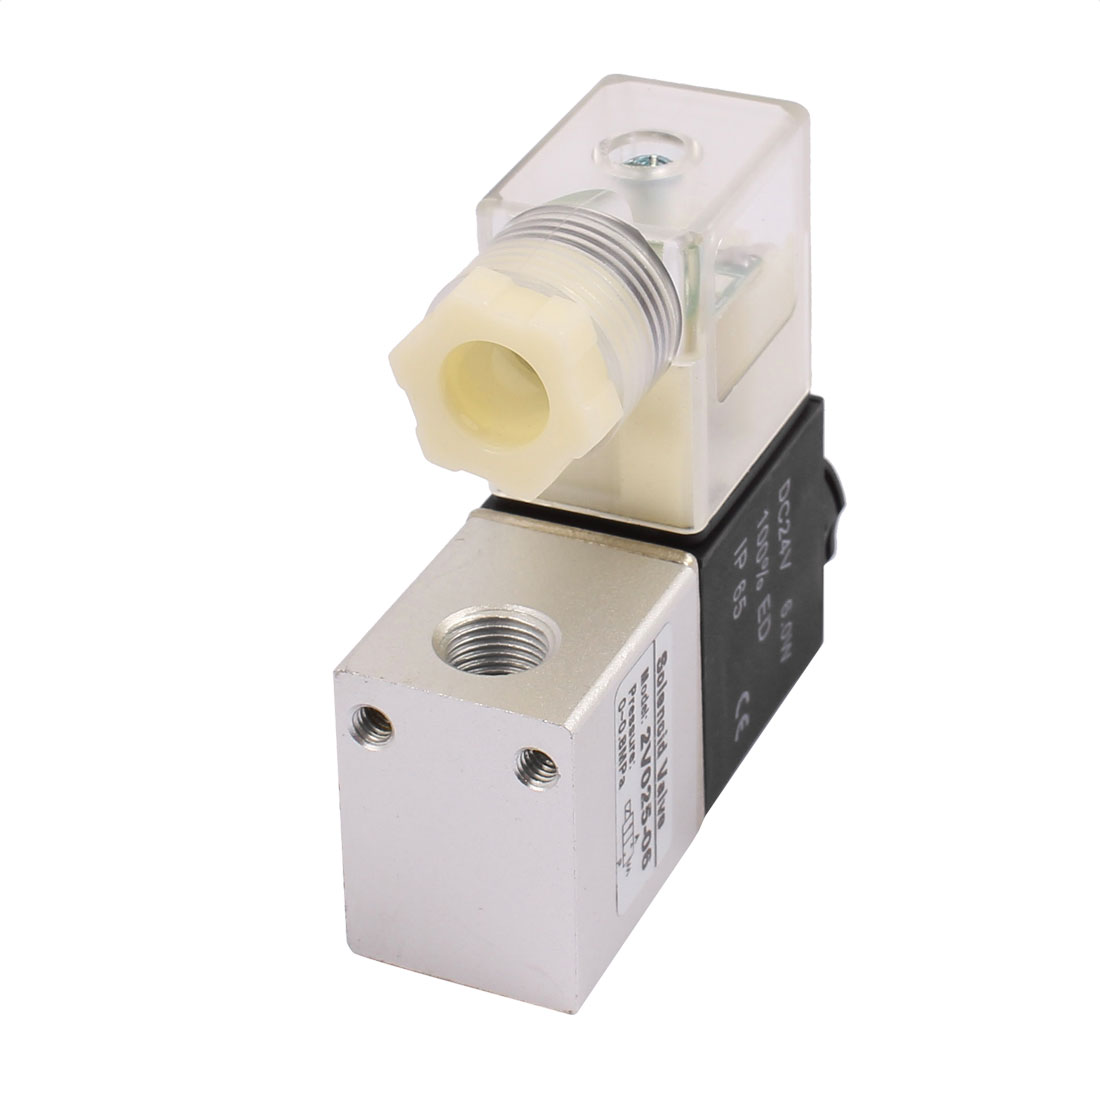 DC 24V Dual Position Two Way Neutral Electric Pneumatic Solenoid Valve 2V025-06